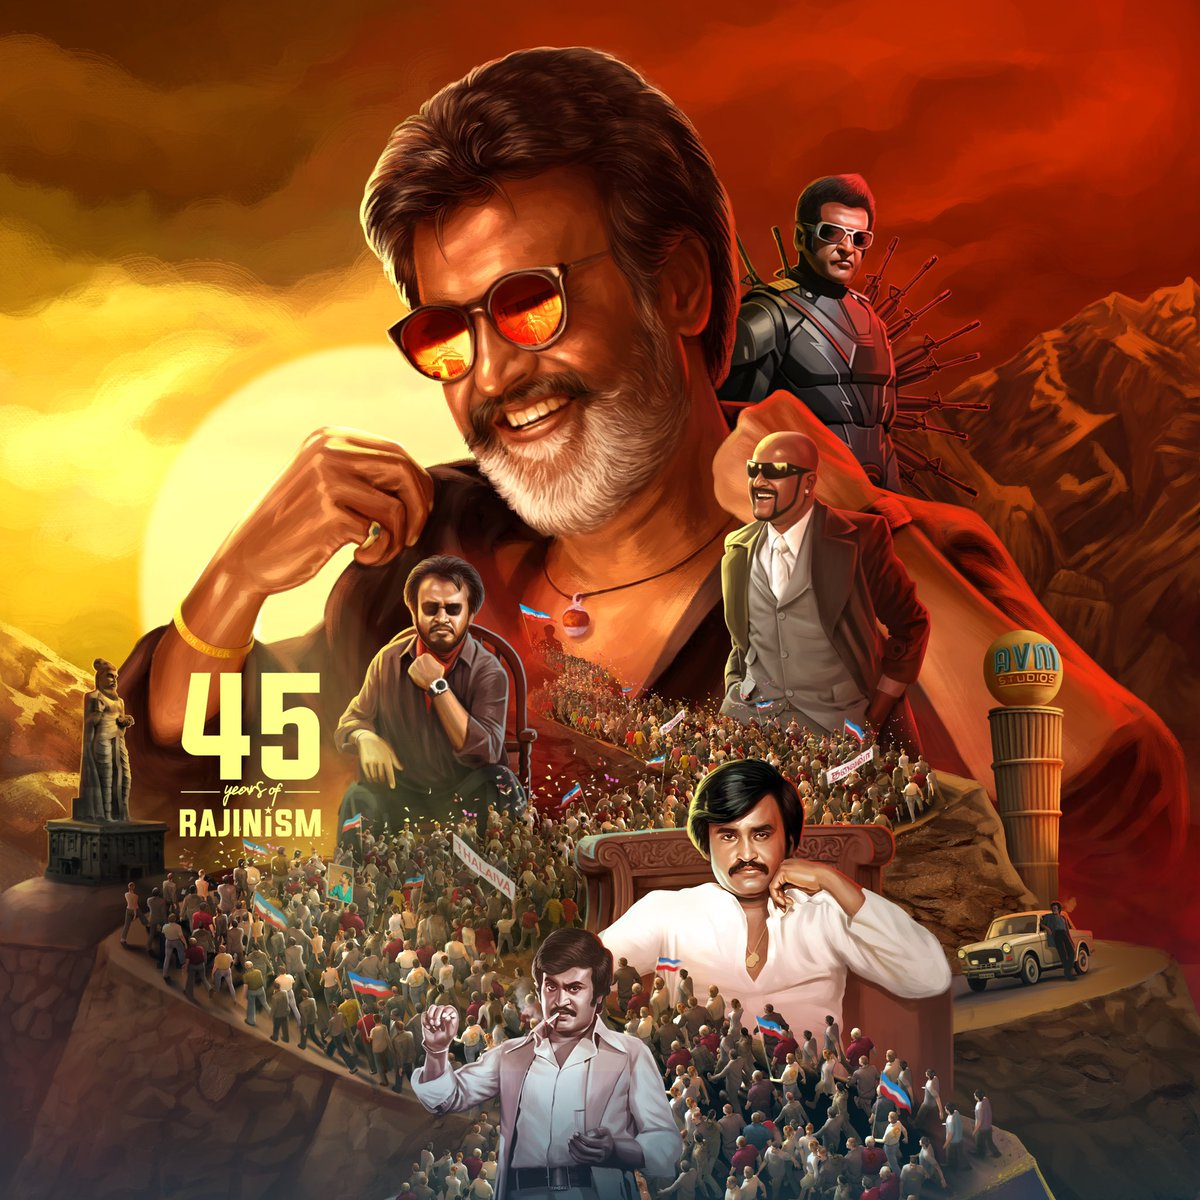 Extremely Happy to release our beloved #Thalaivar #Superstar @rajinikanth sirs #45YearsOfRajinismCDP 🔥